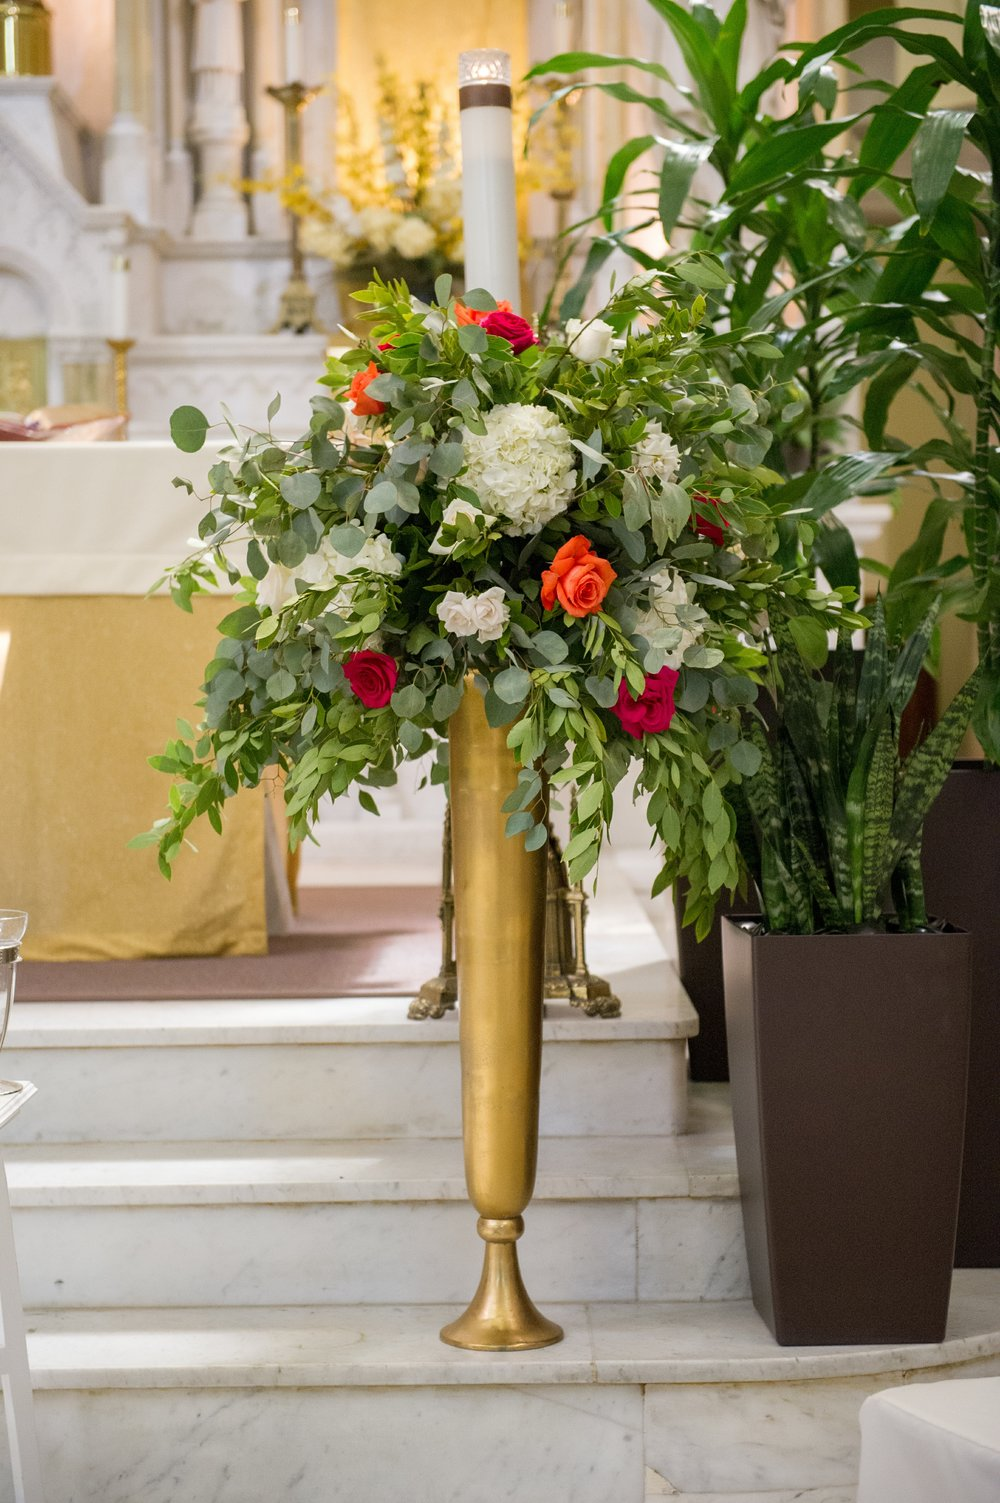 Florals and greenery overflowing in gold pillar vases framed the ceremony space.